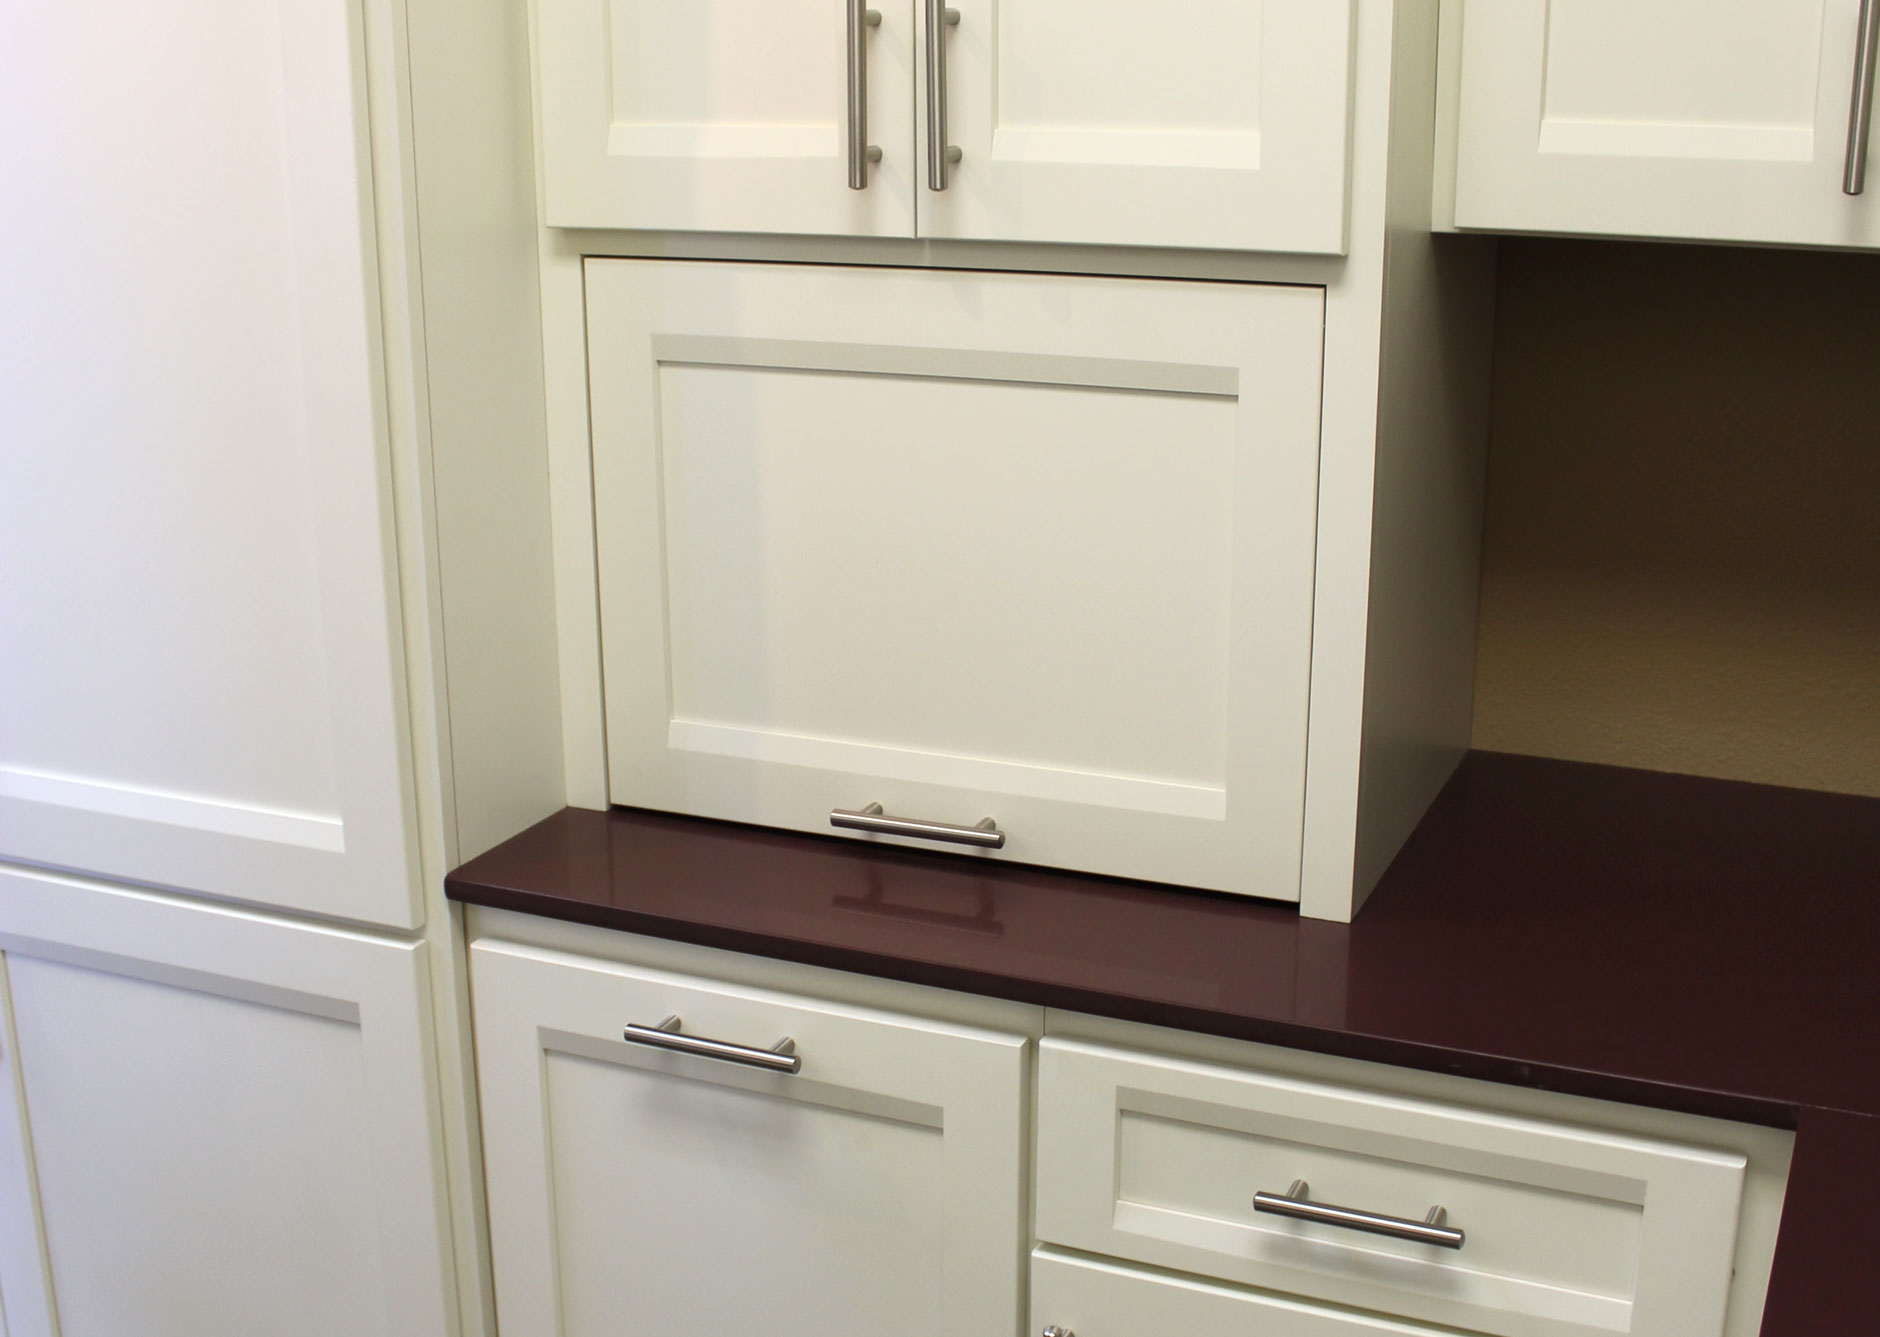 Appliance storage burrows cabinets central texas for Appliance garage kitchen cabinets